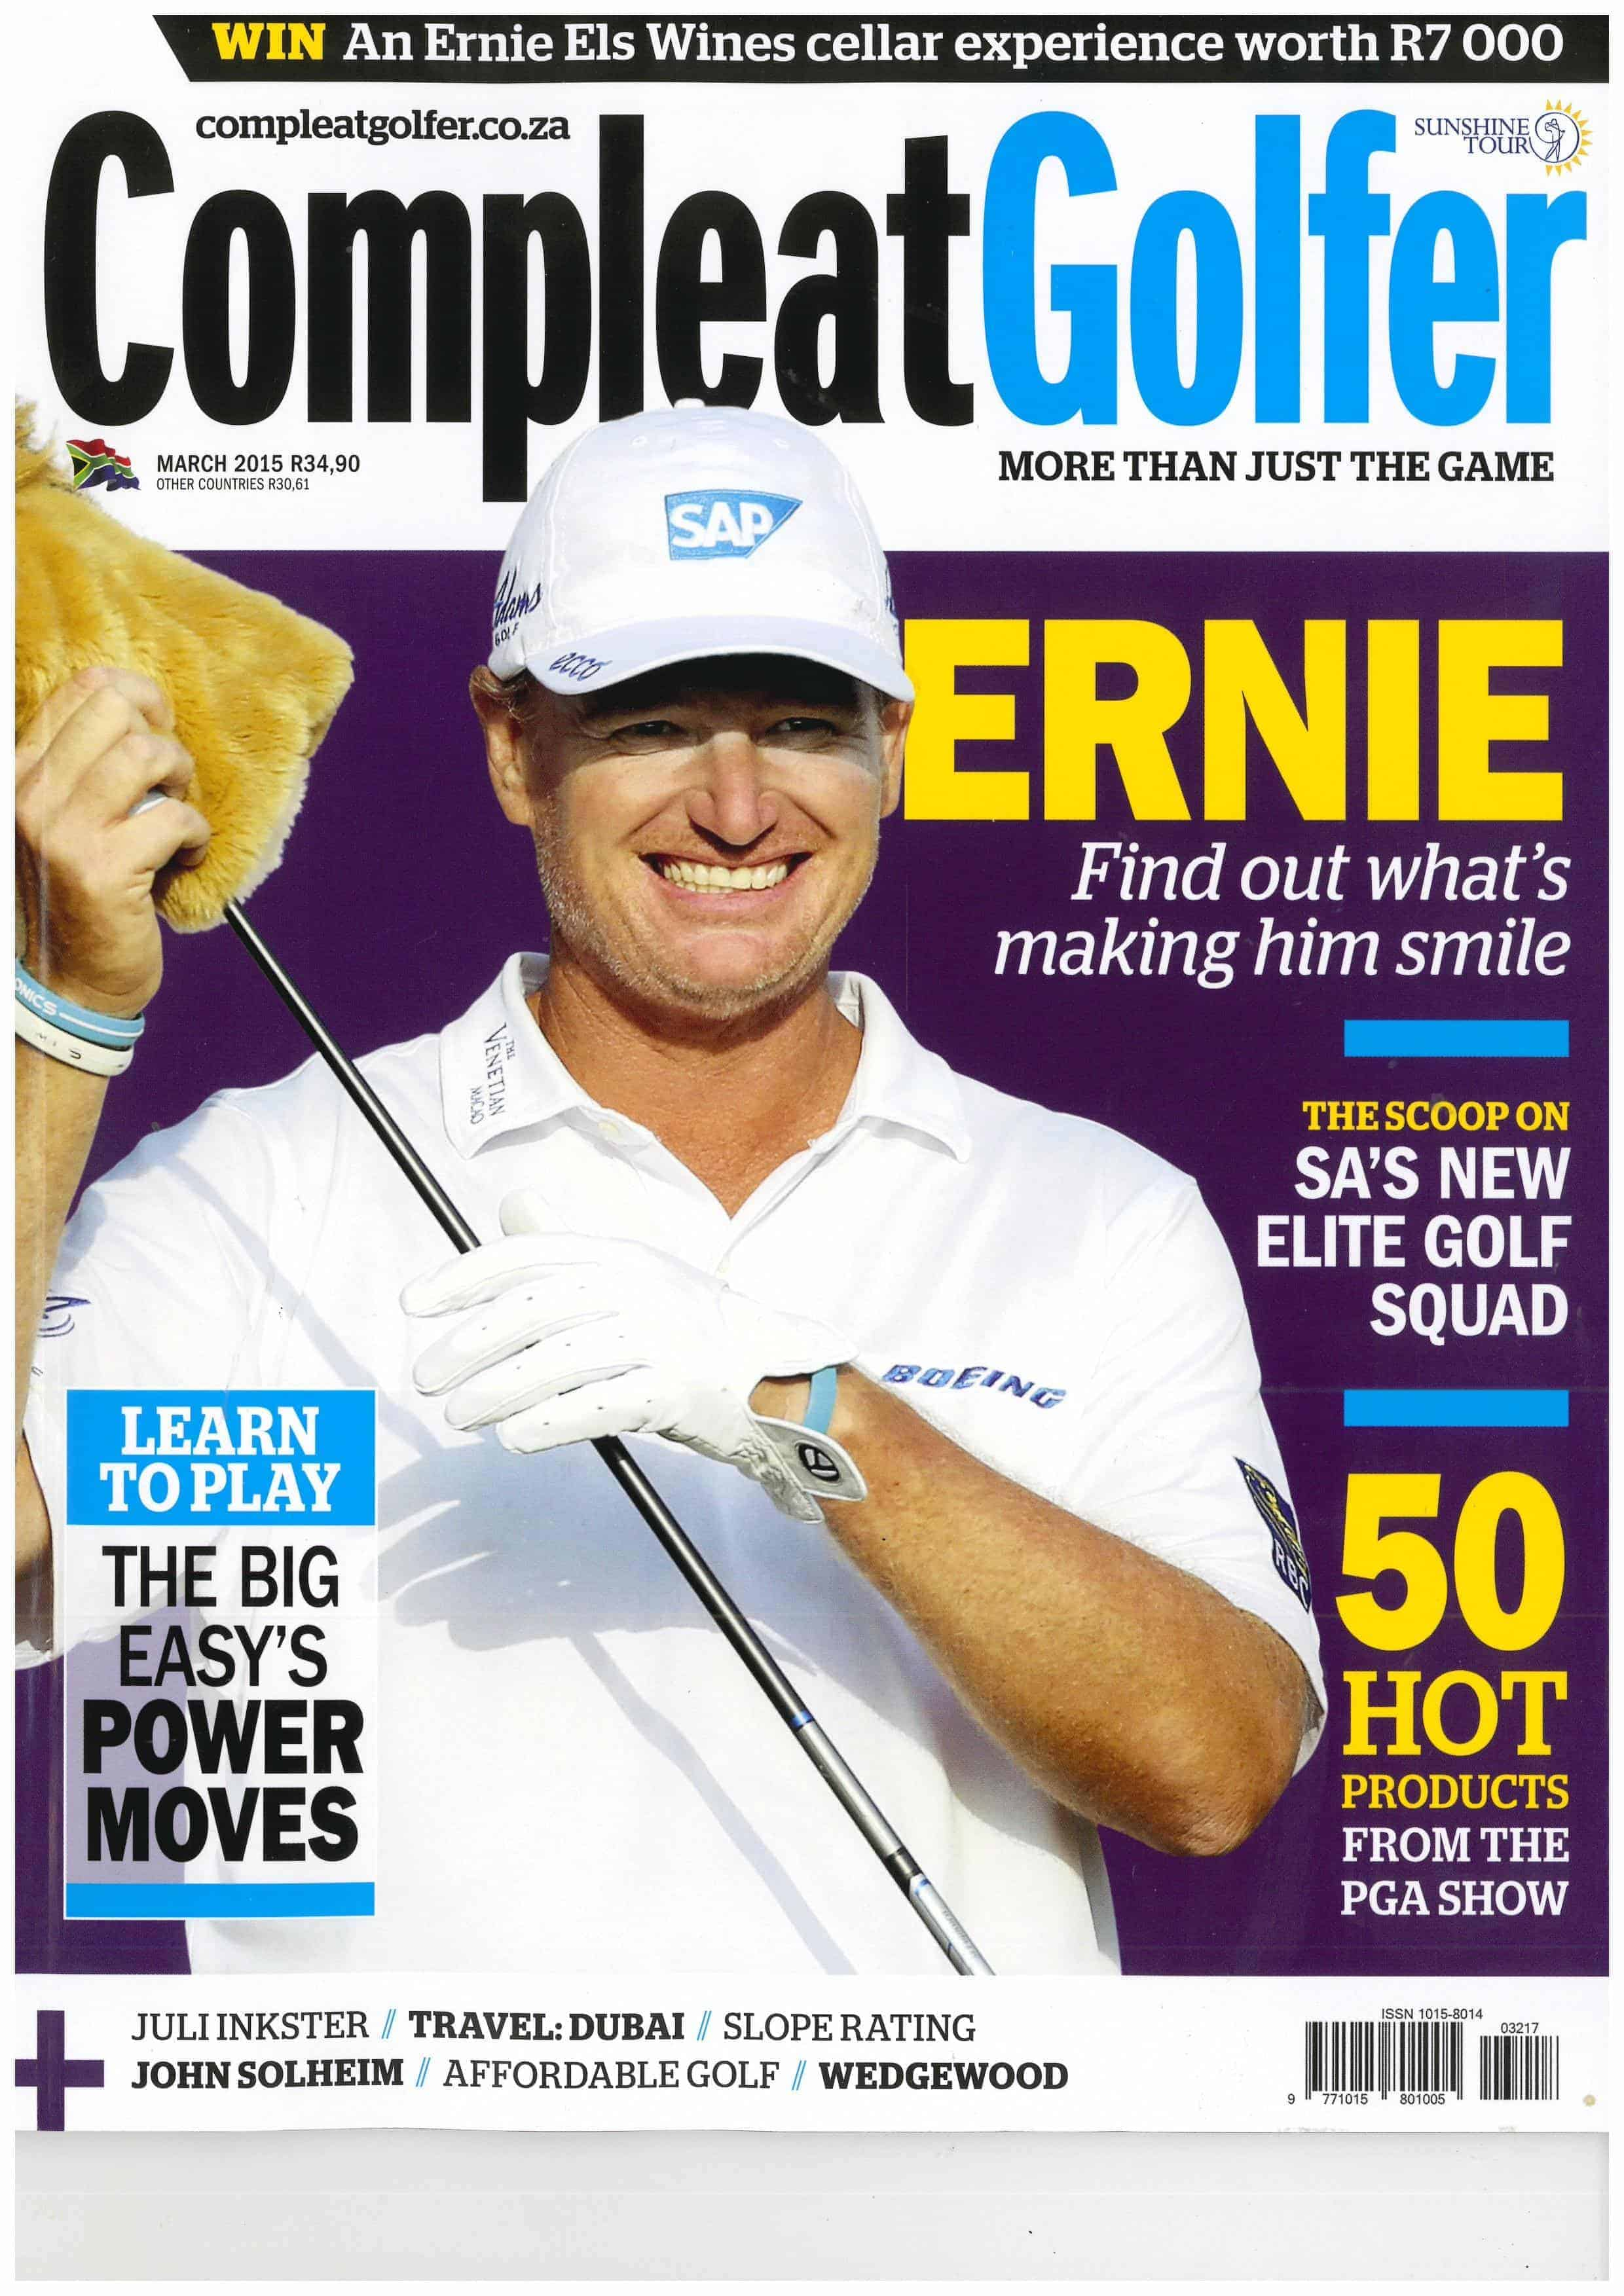 Compleat Golfer March 2015